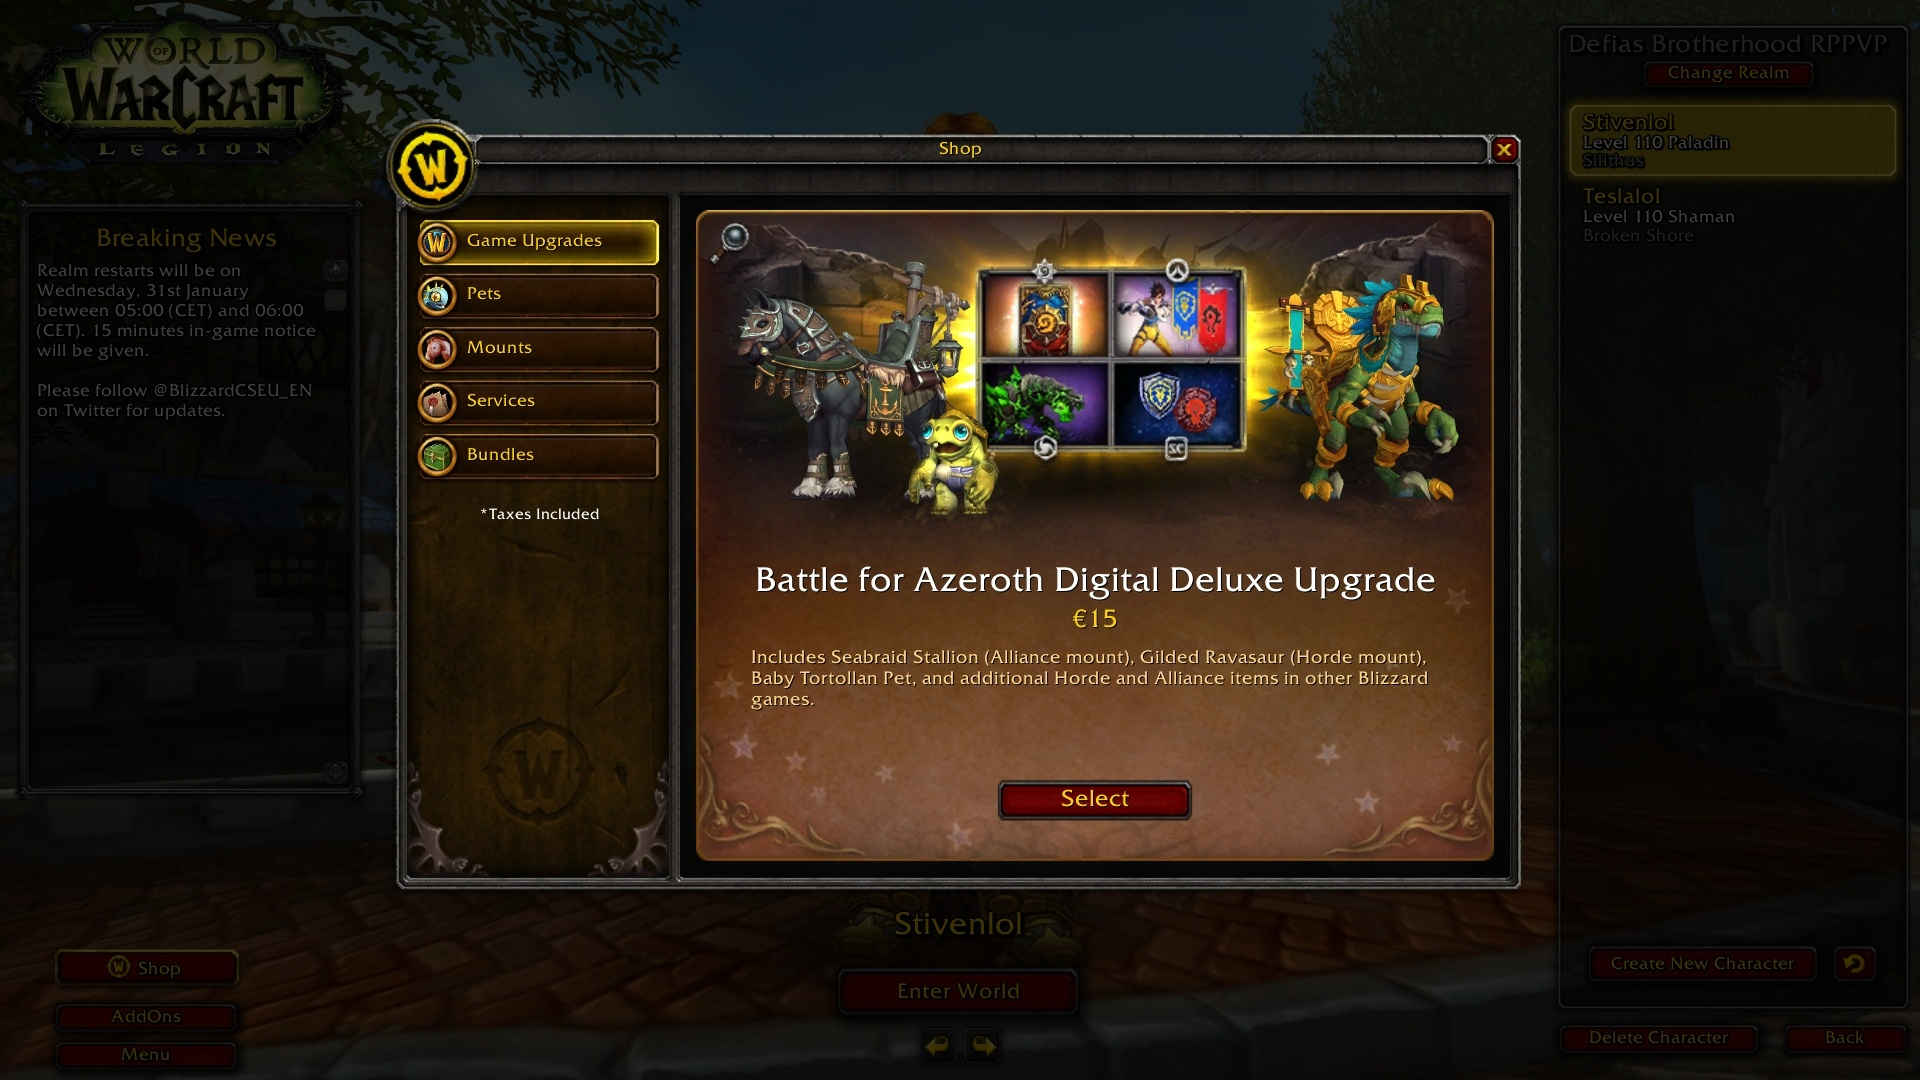 New item added to world of warcraft: legion digital deluxe bonuses.